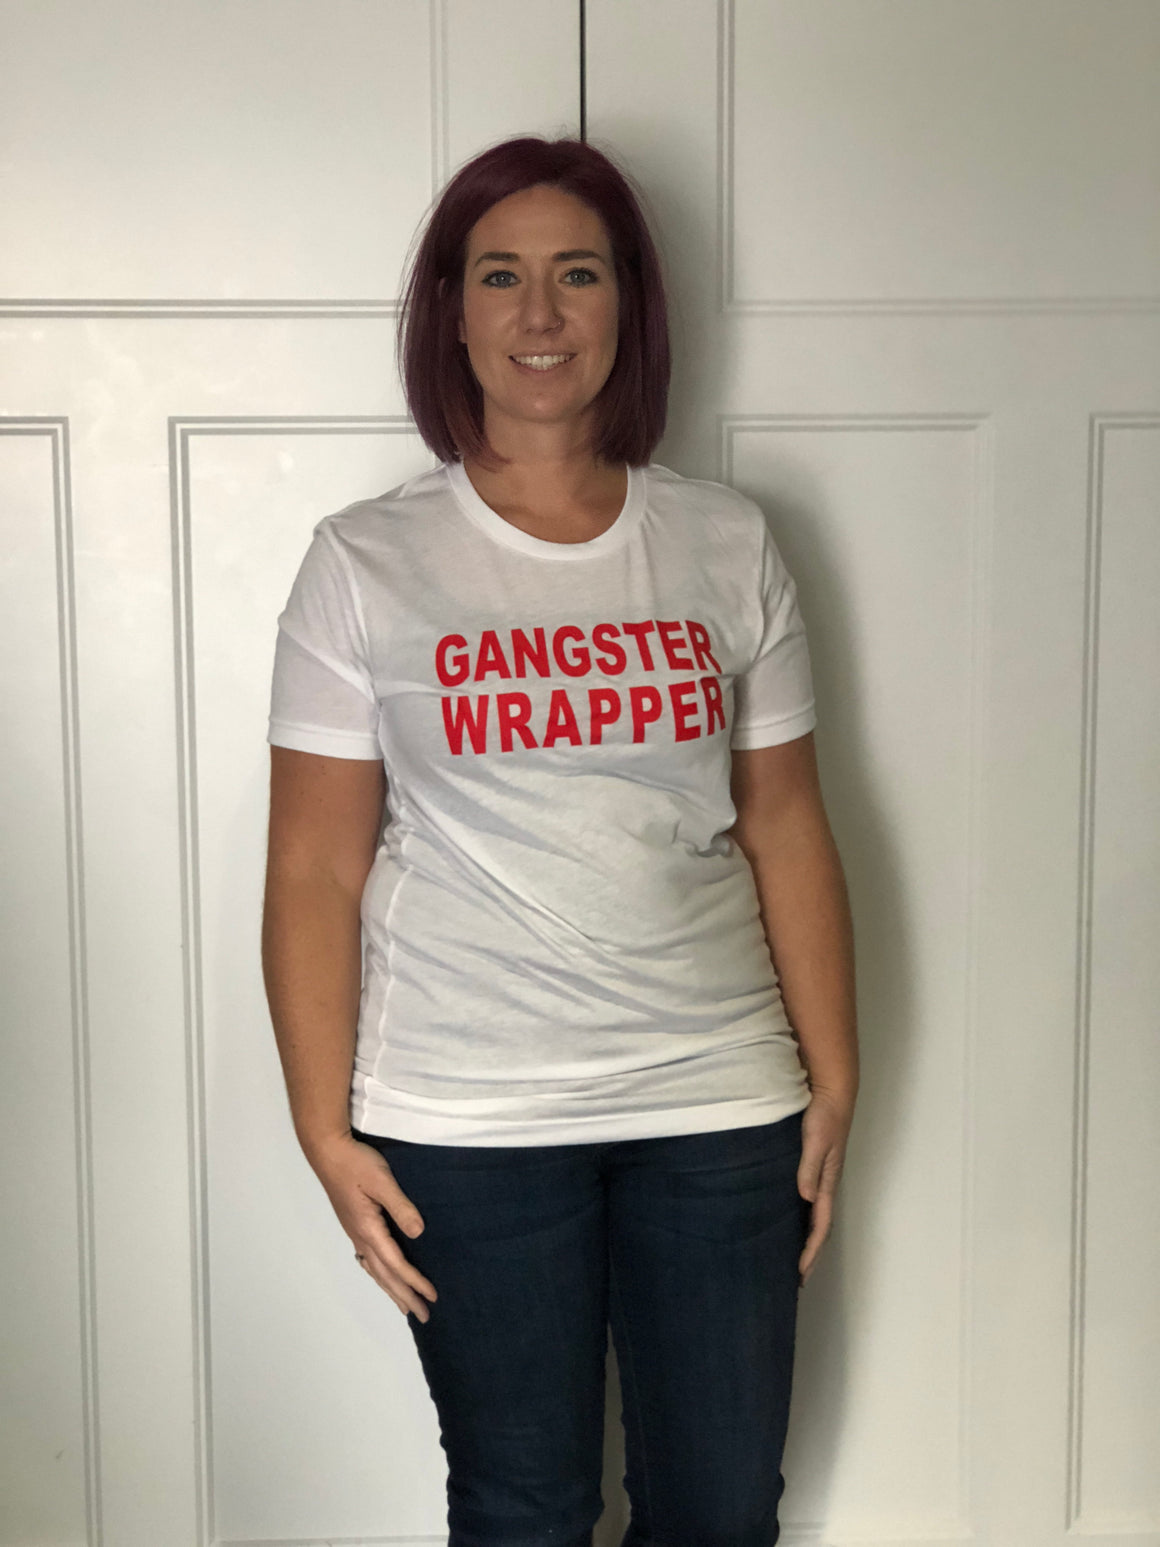 Gangster Wrapper T - Bliss and Backroads